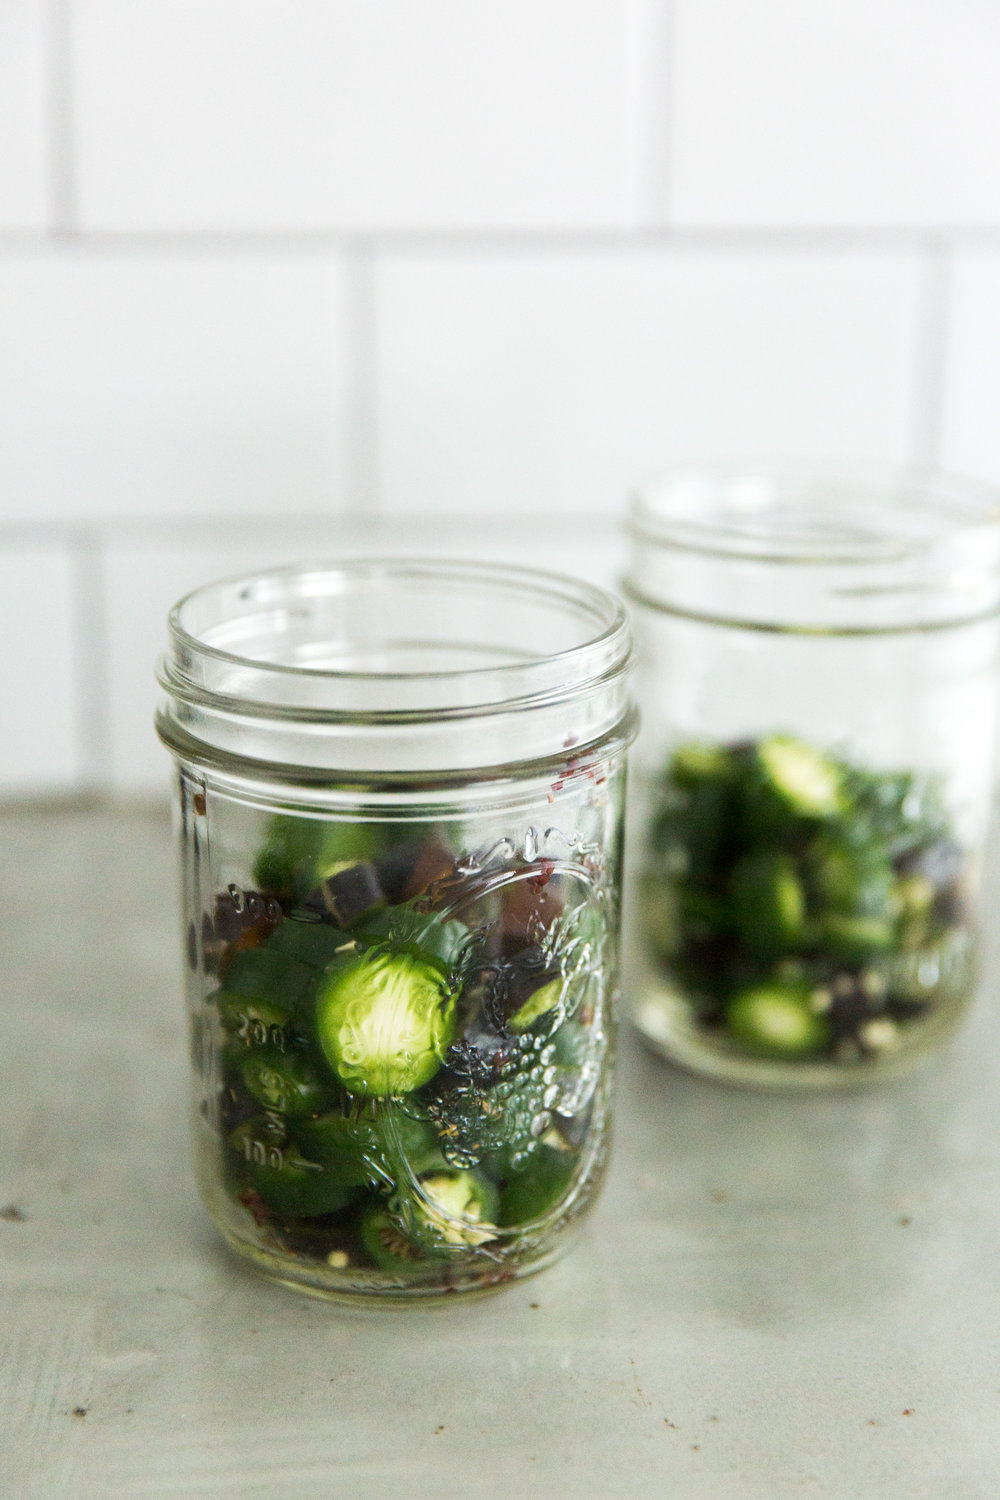 Chopped Jalapeños in jars